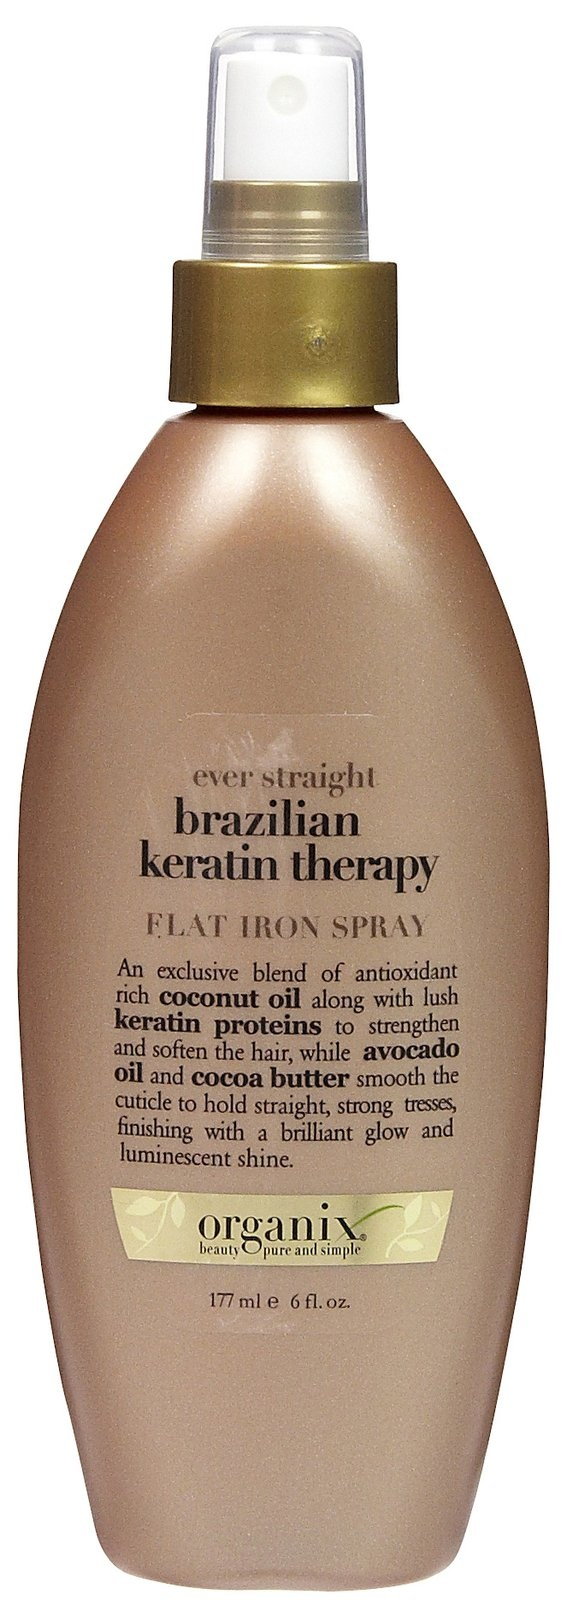 Ogx Ever Straight Brazilian Keratin Therapy Flat Iron ...